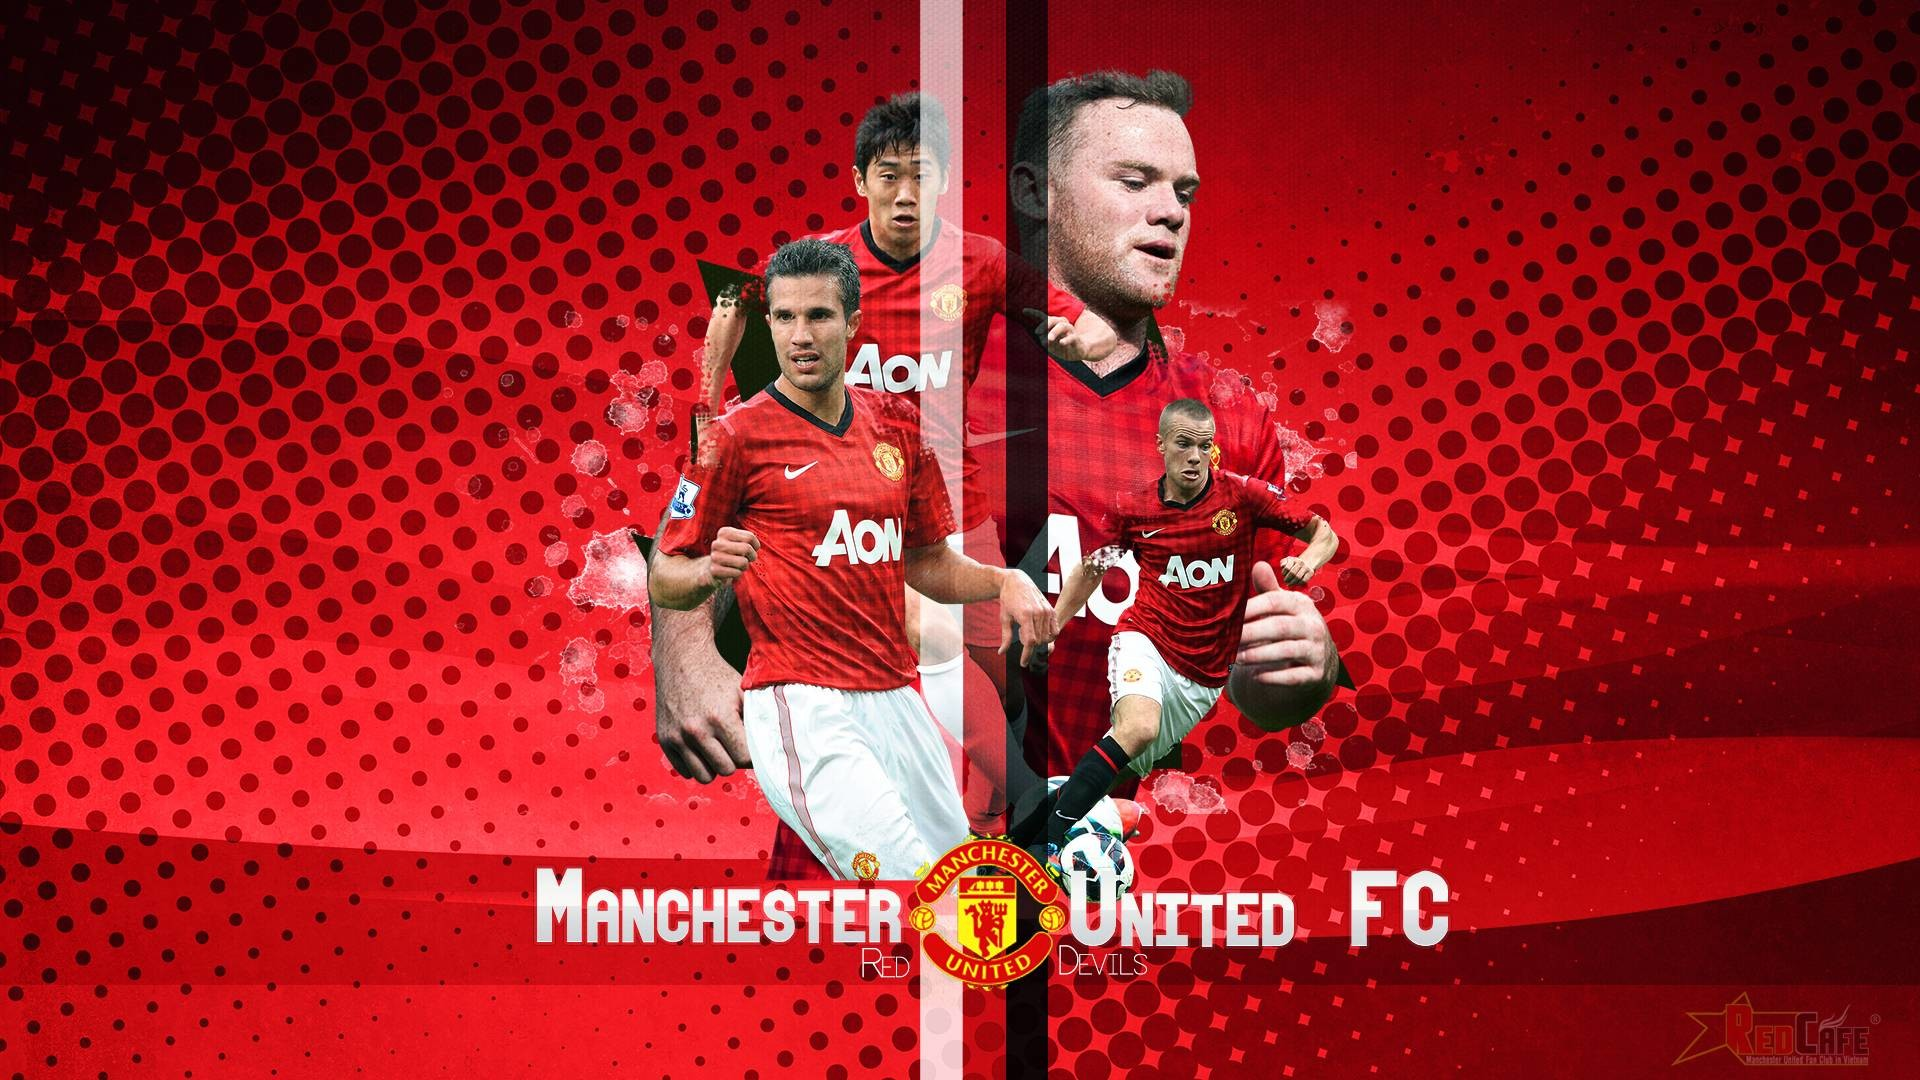 Manchester United Wallpaper For Android | Manuwallhd.com